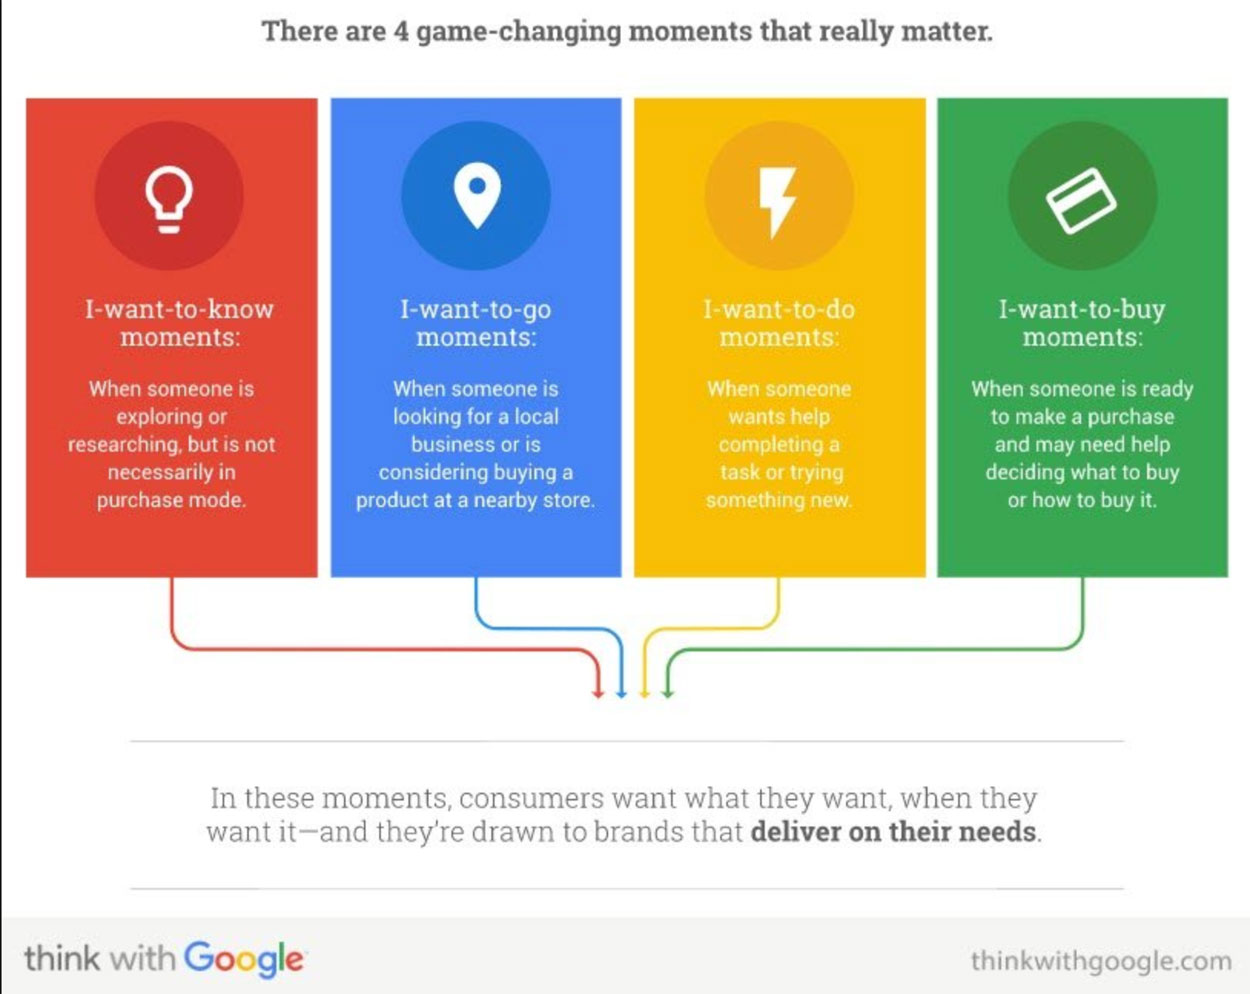 infographic-game-changing-moments